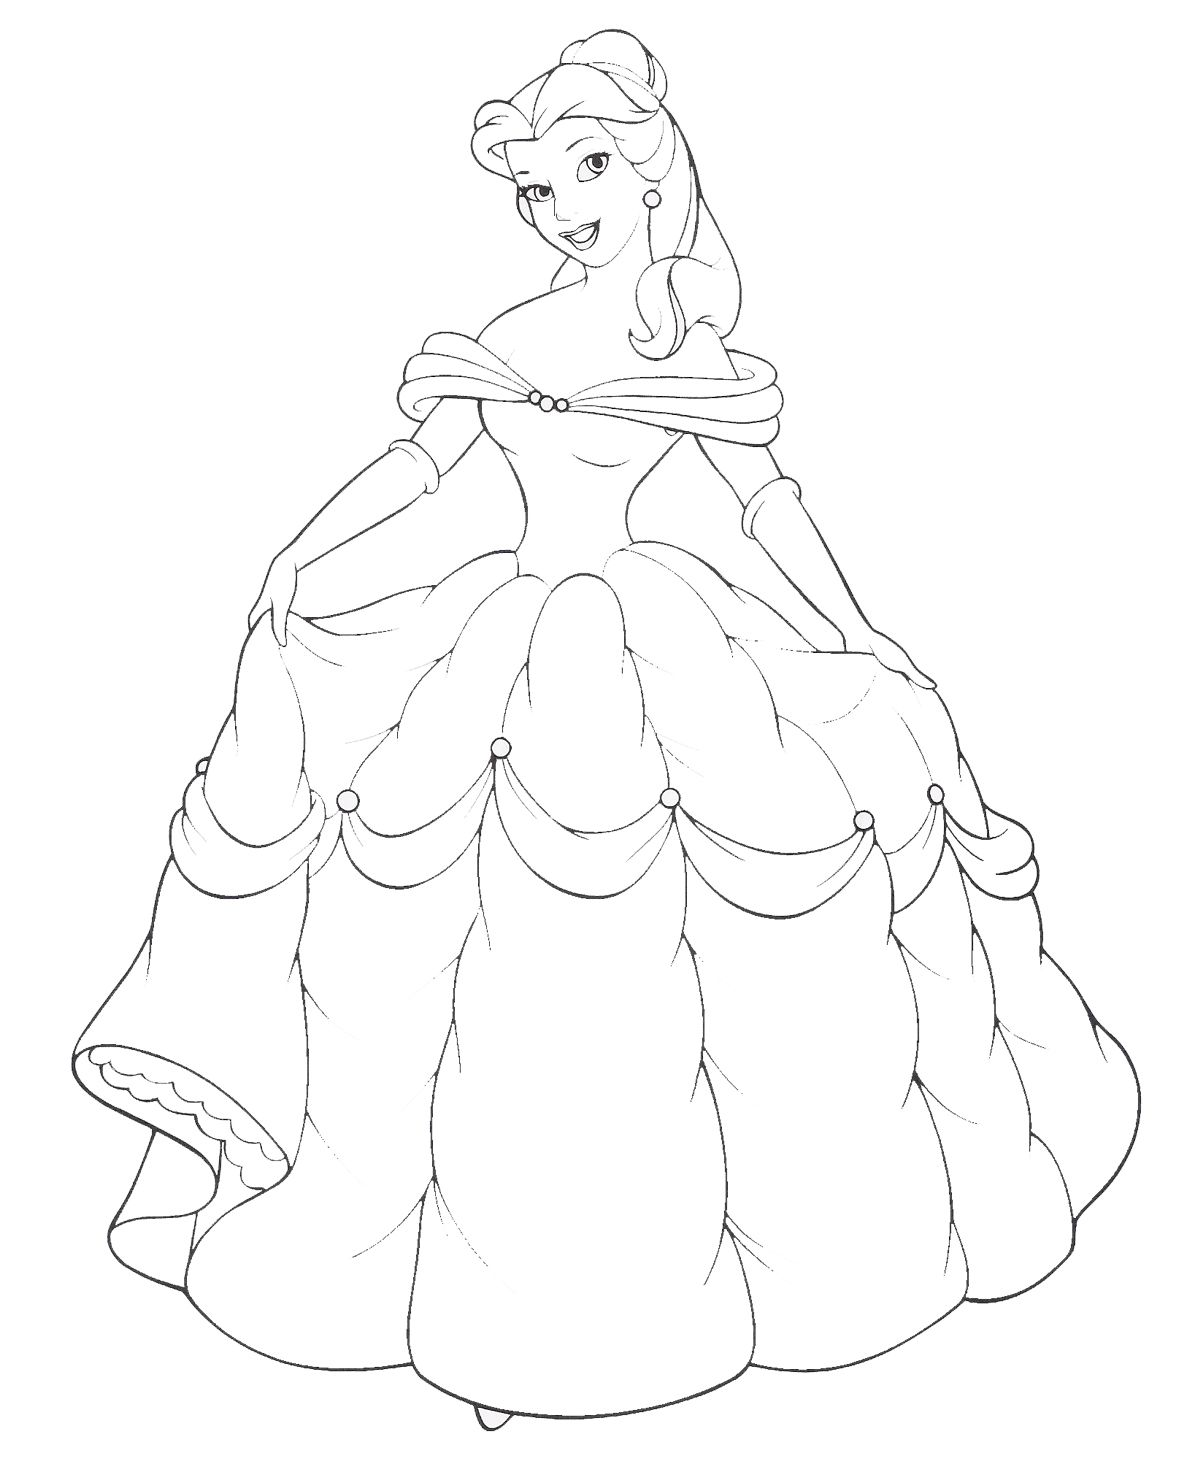 disney princess belle and her gown coloring sheet to paint on